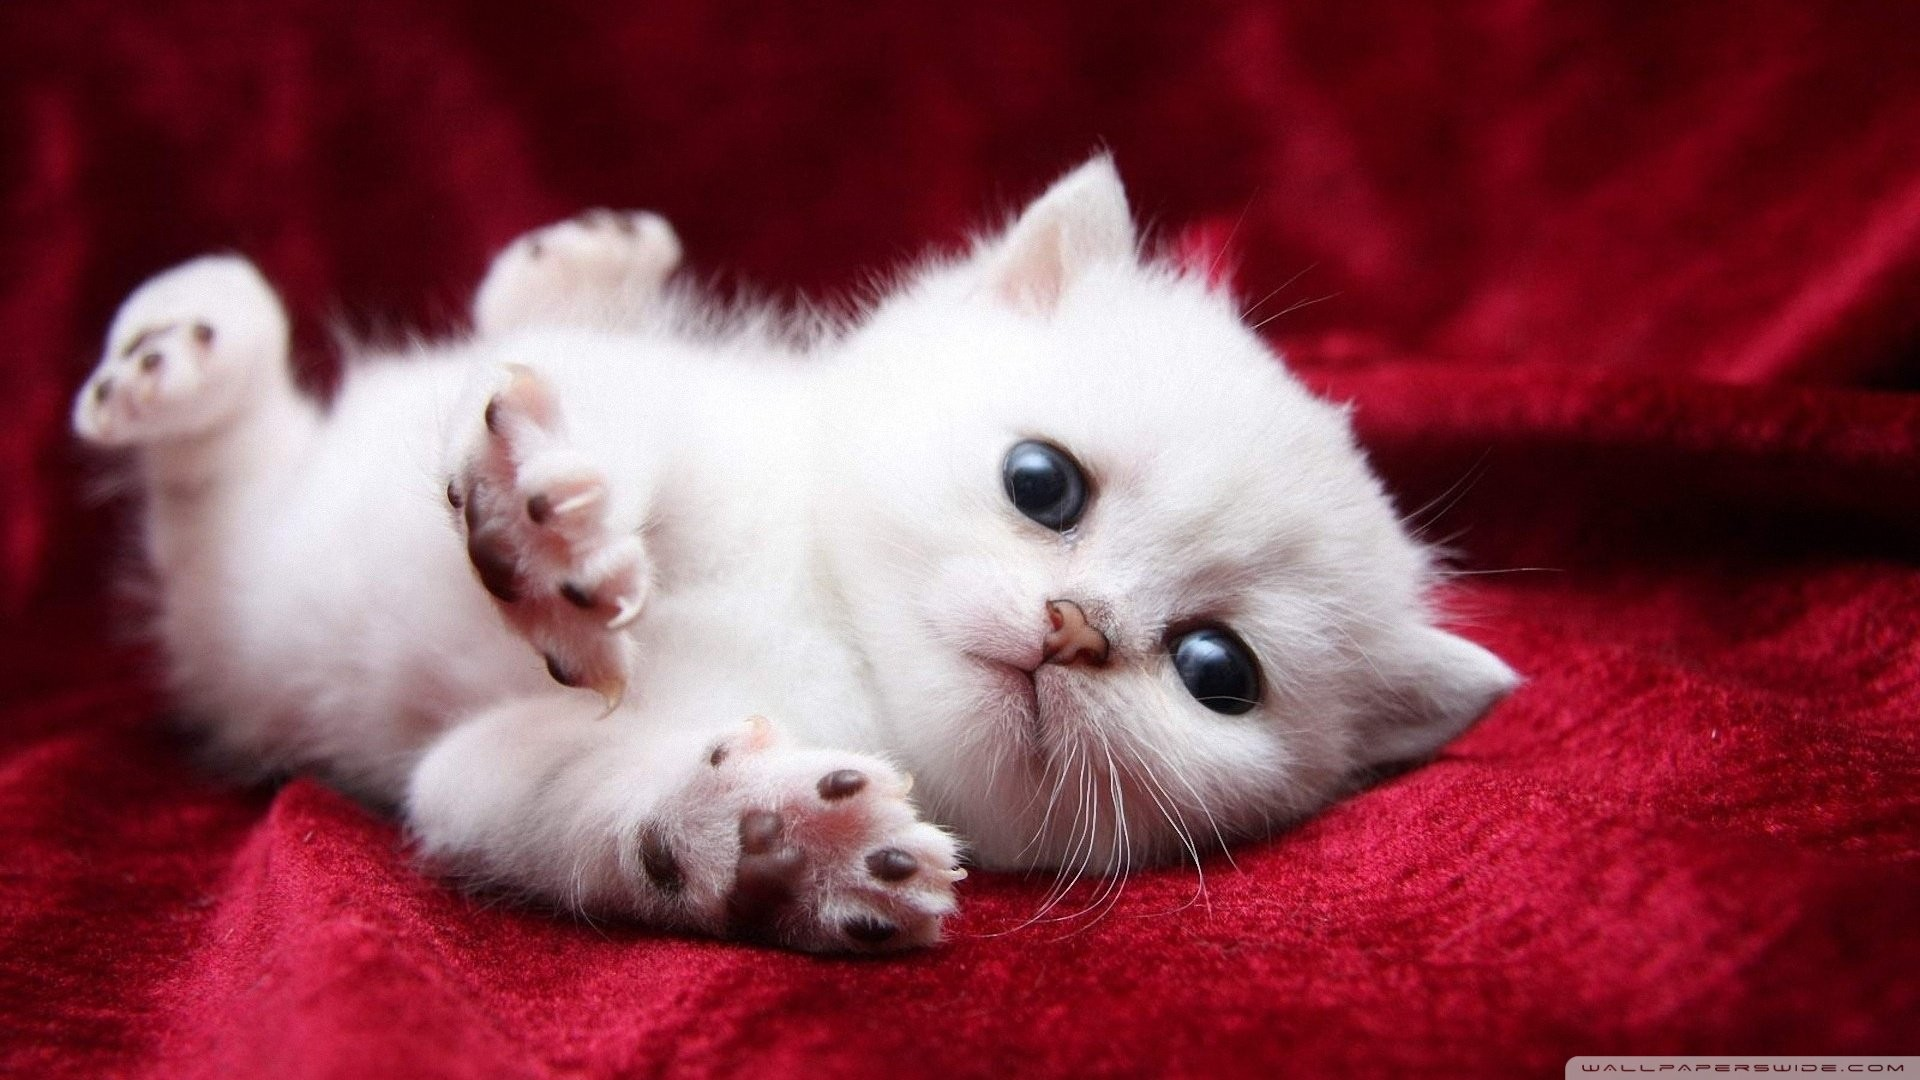 Kitty Cat Wallpaper 72 Images